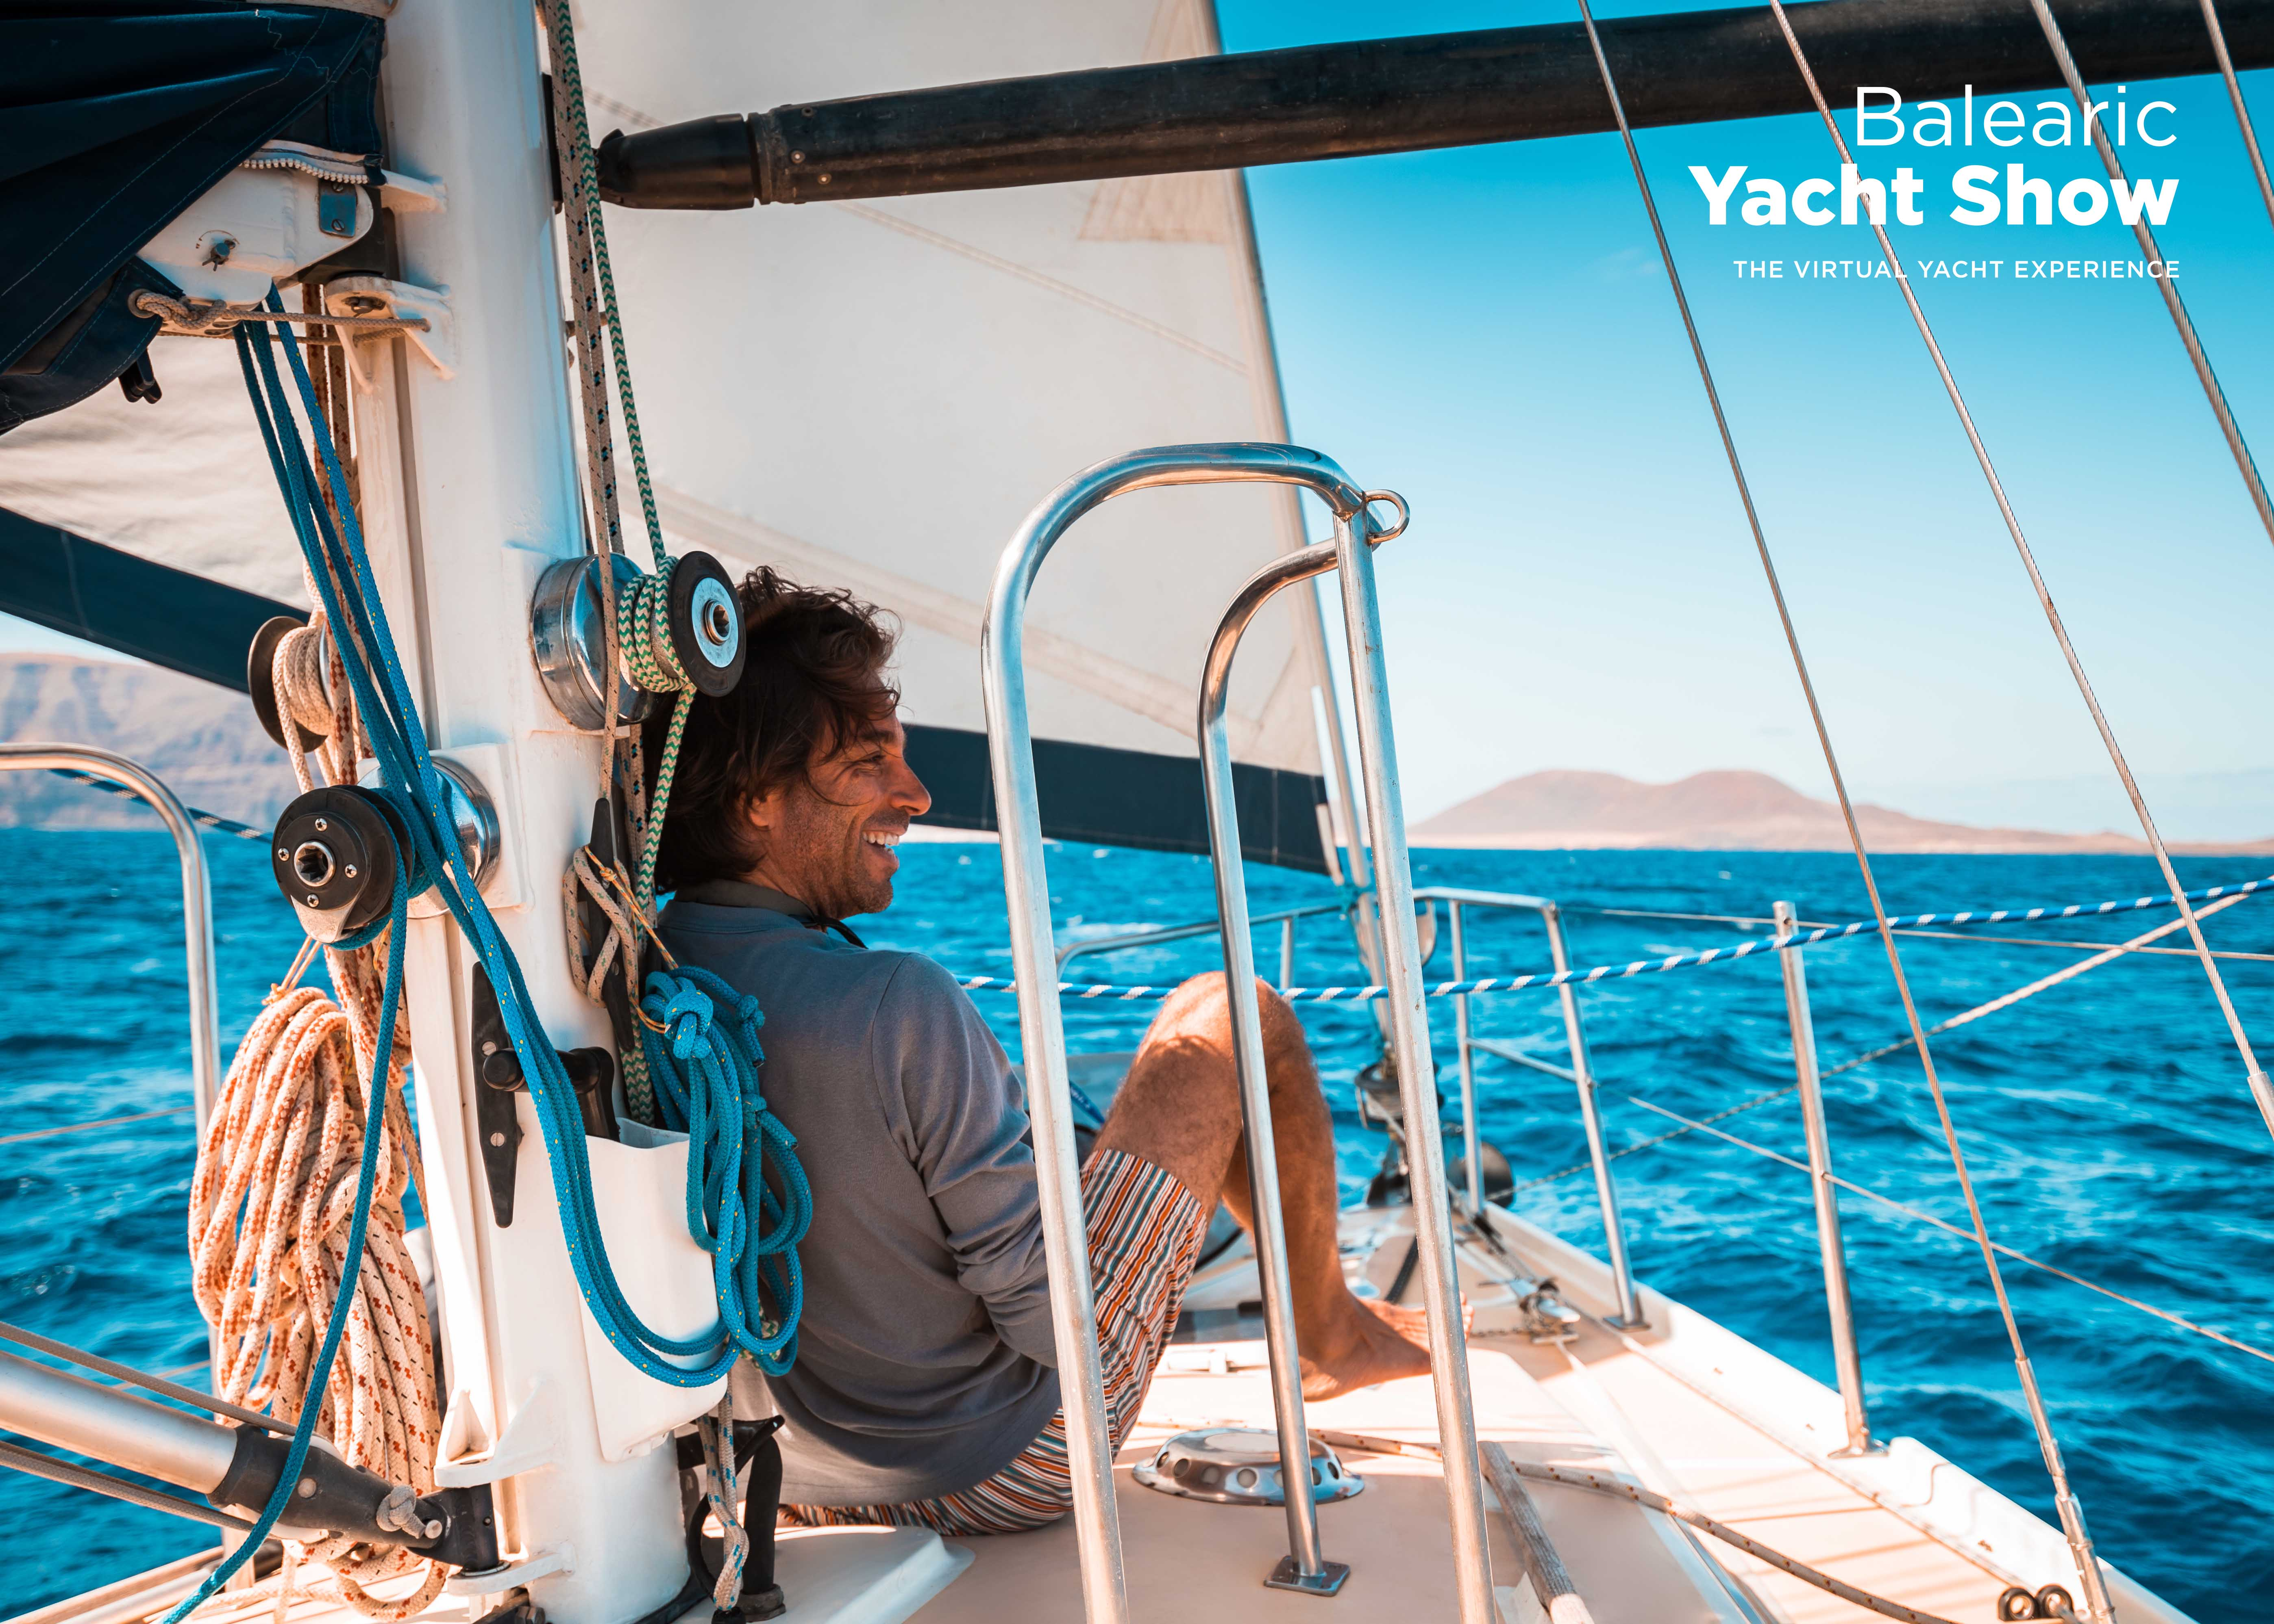 Yacht Crew Help: A Portal to Support Crew Mental Health